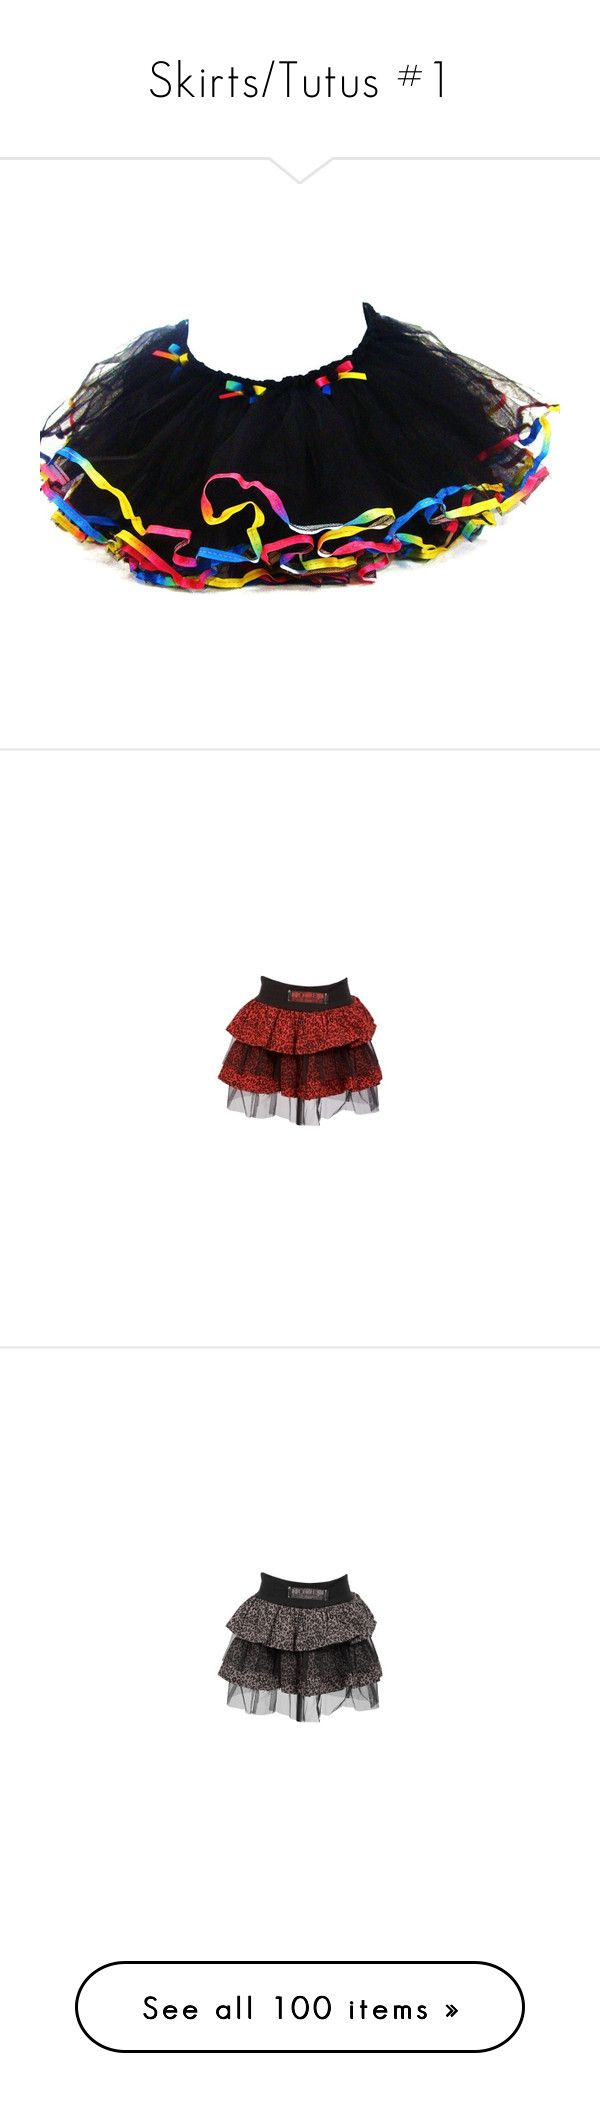 """""""Skirts/Tutus #1"""" by baby-star-burst ❤ liked on Polyvore featuring skirts, bottoms, tutus, tutu, short skirt, tutu skirts, red tutu skirt, red skirt, red tutu and poizen industries"""